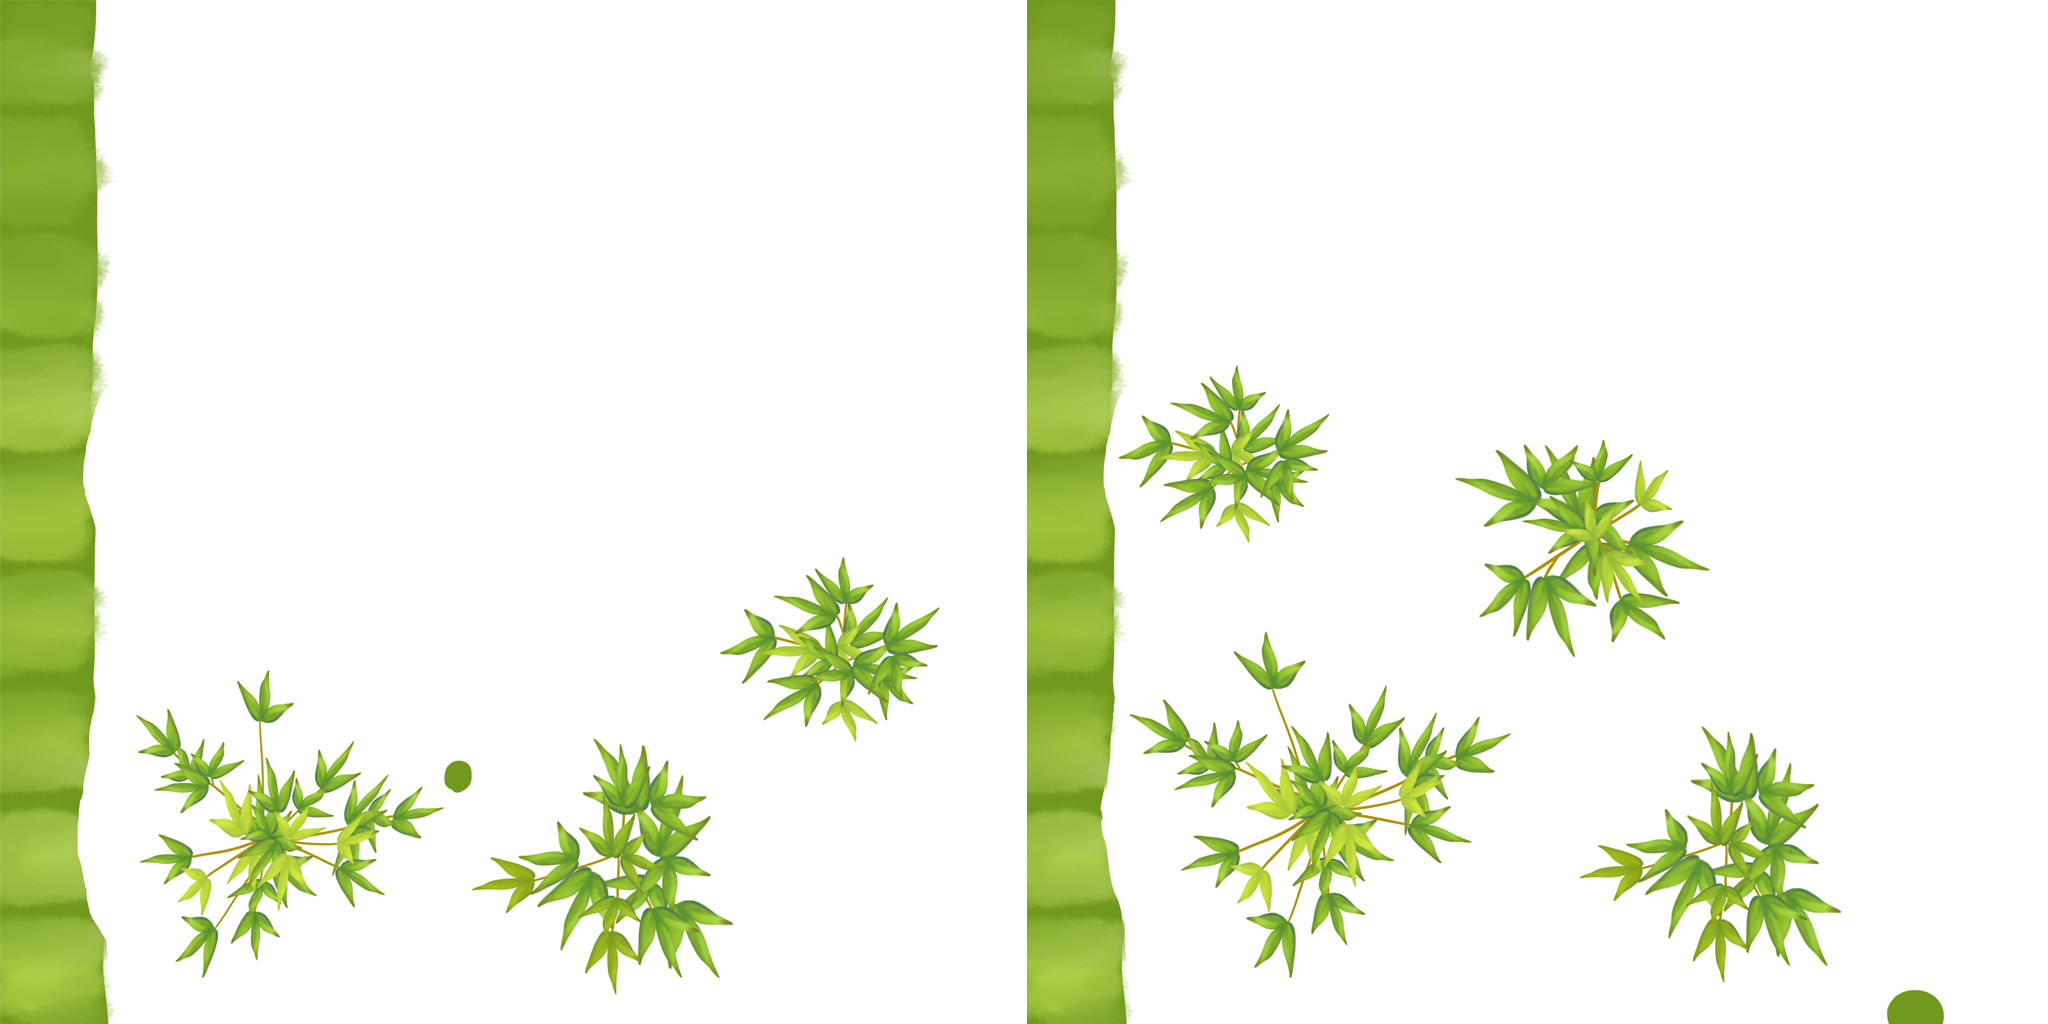 Variants on the bamboo texture.